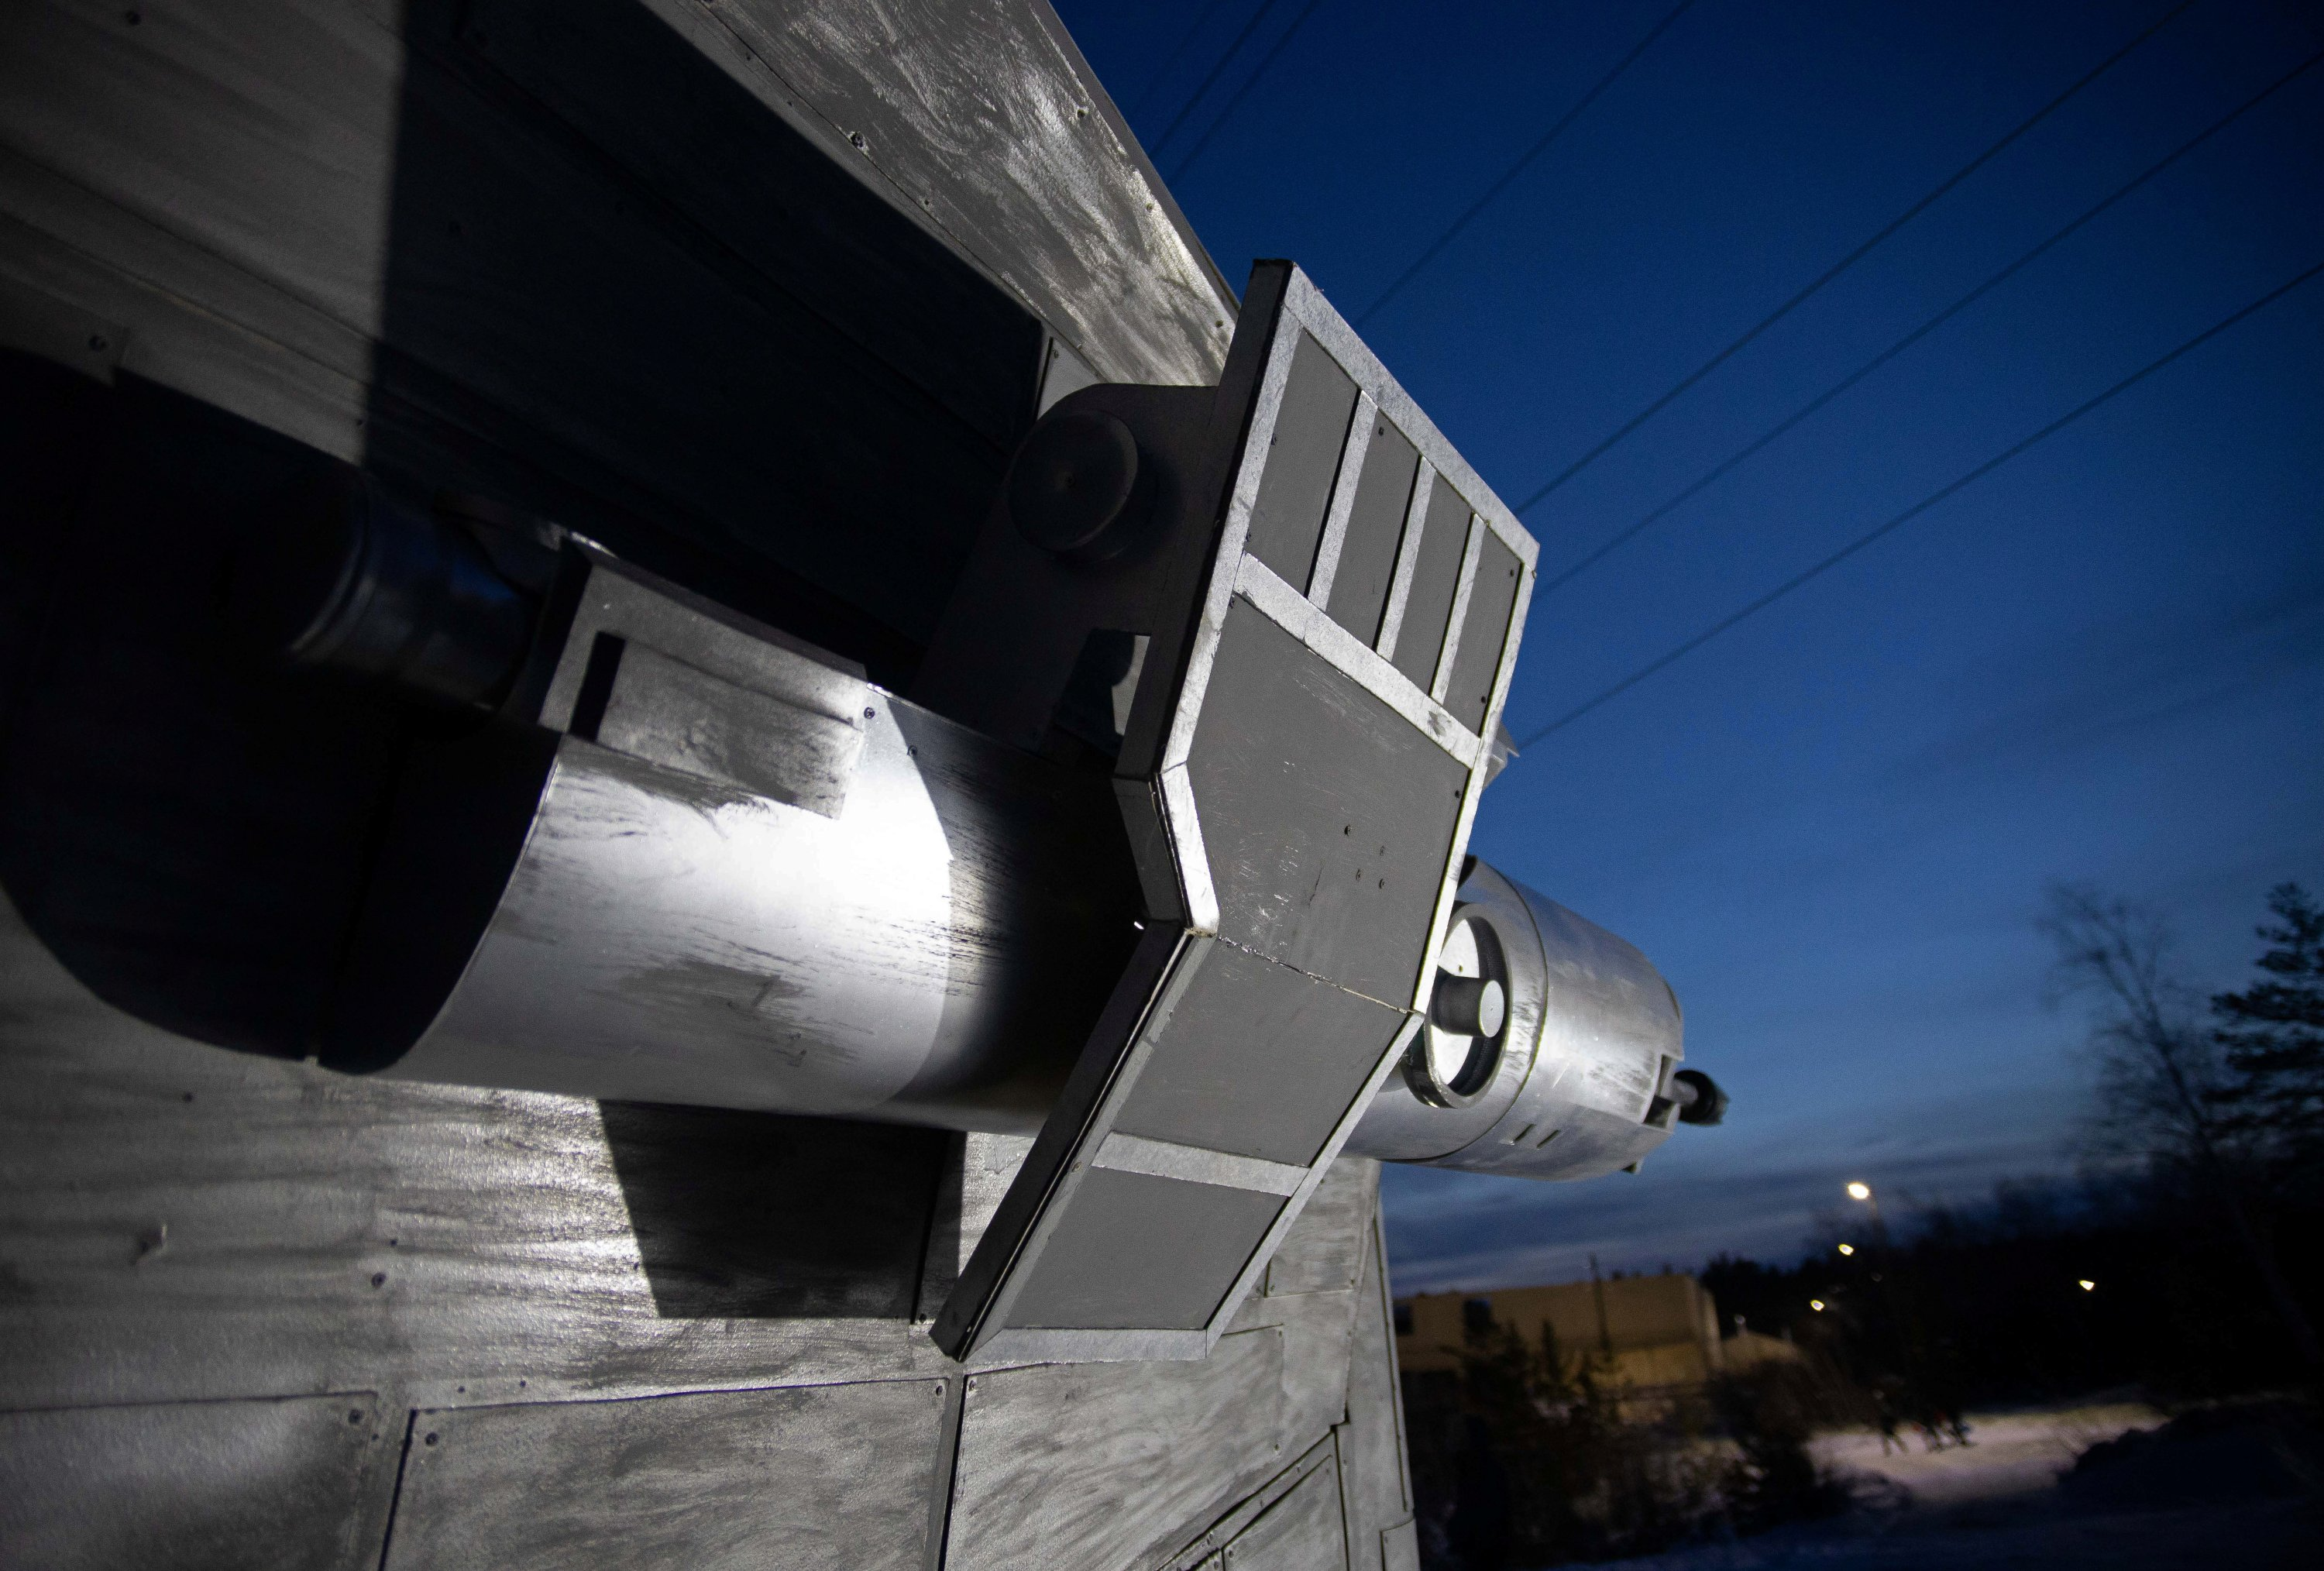 A view shows the mock-missile weaponry attached to a replica of the Razor Crest gunship from the Mandalorian Disney  TV series, built by science fiction fans in Yakutsk, Russia, March 10, 2021. (Reuters Photo)